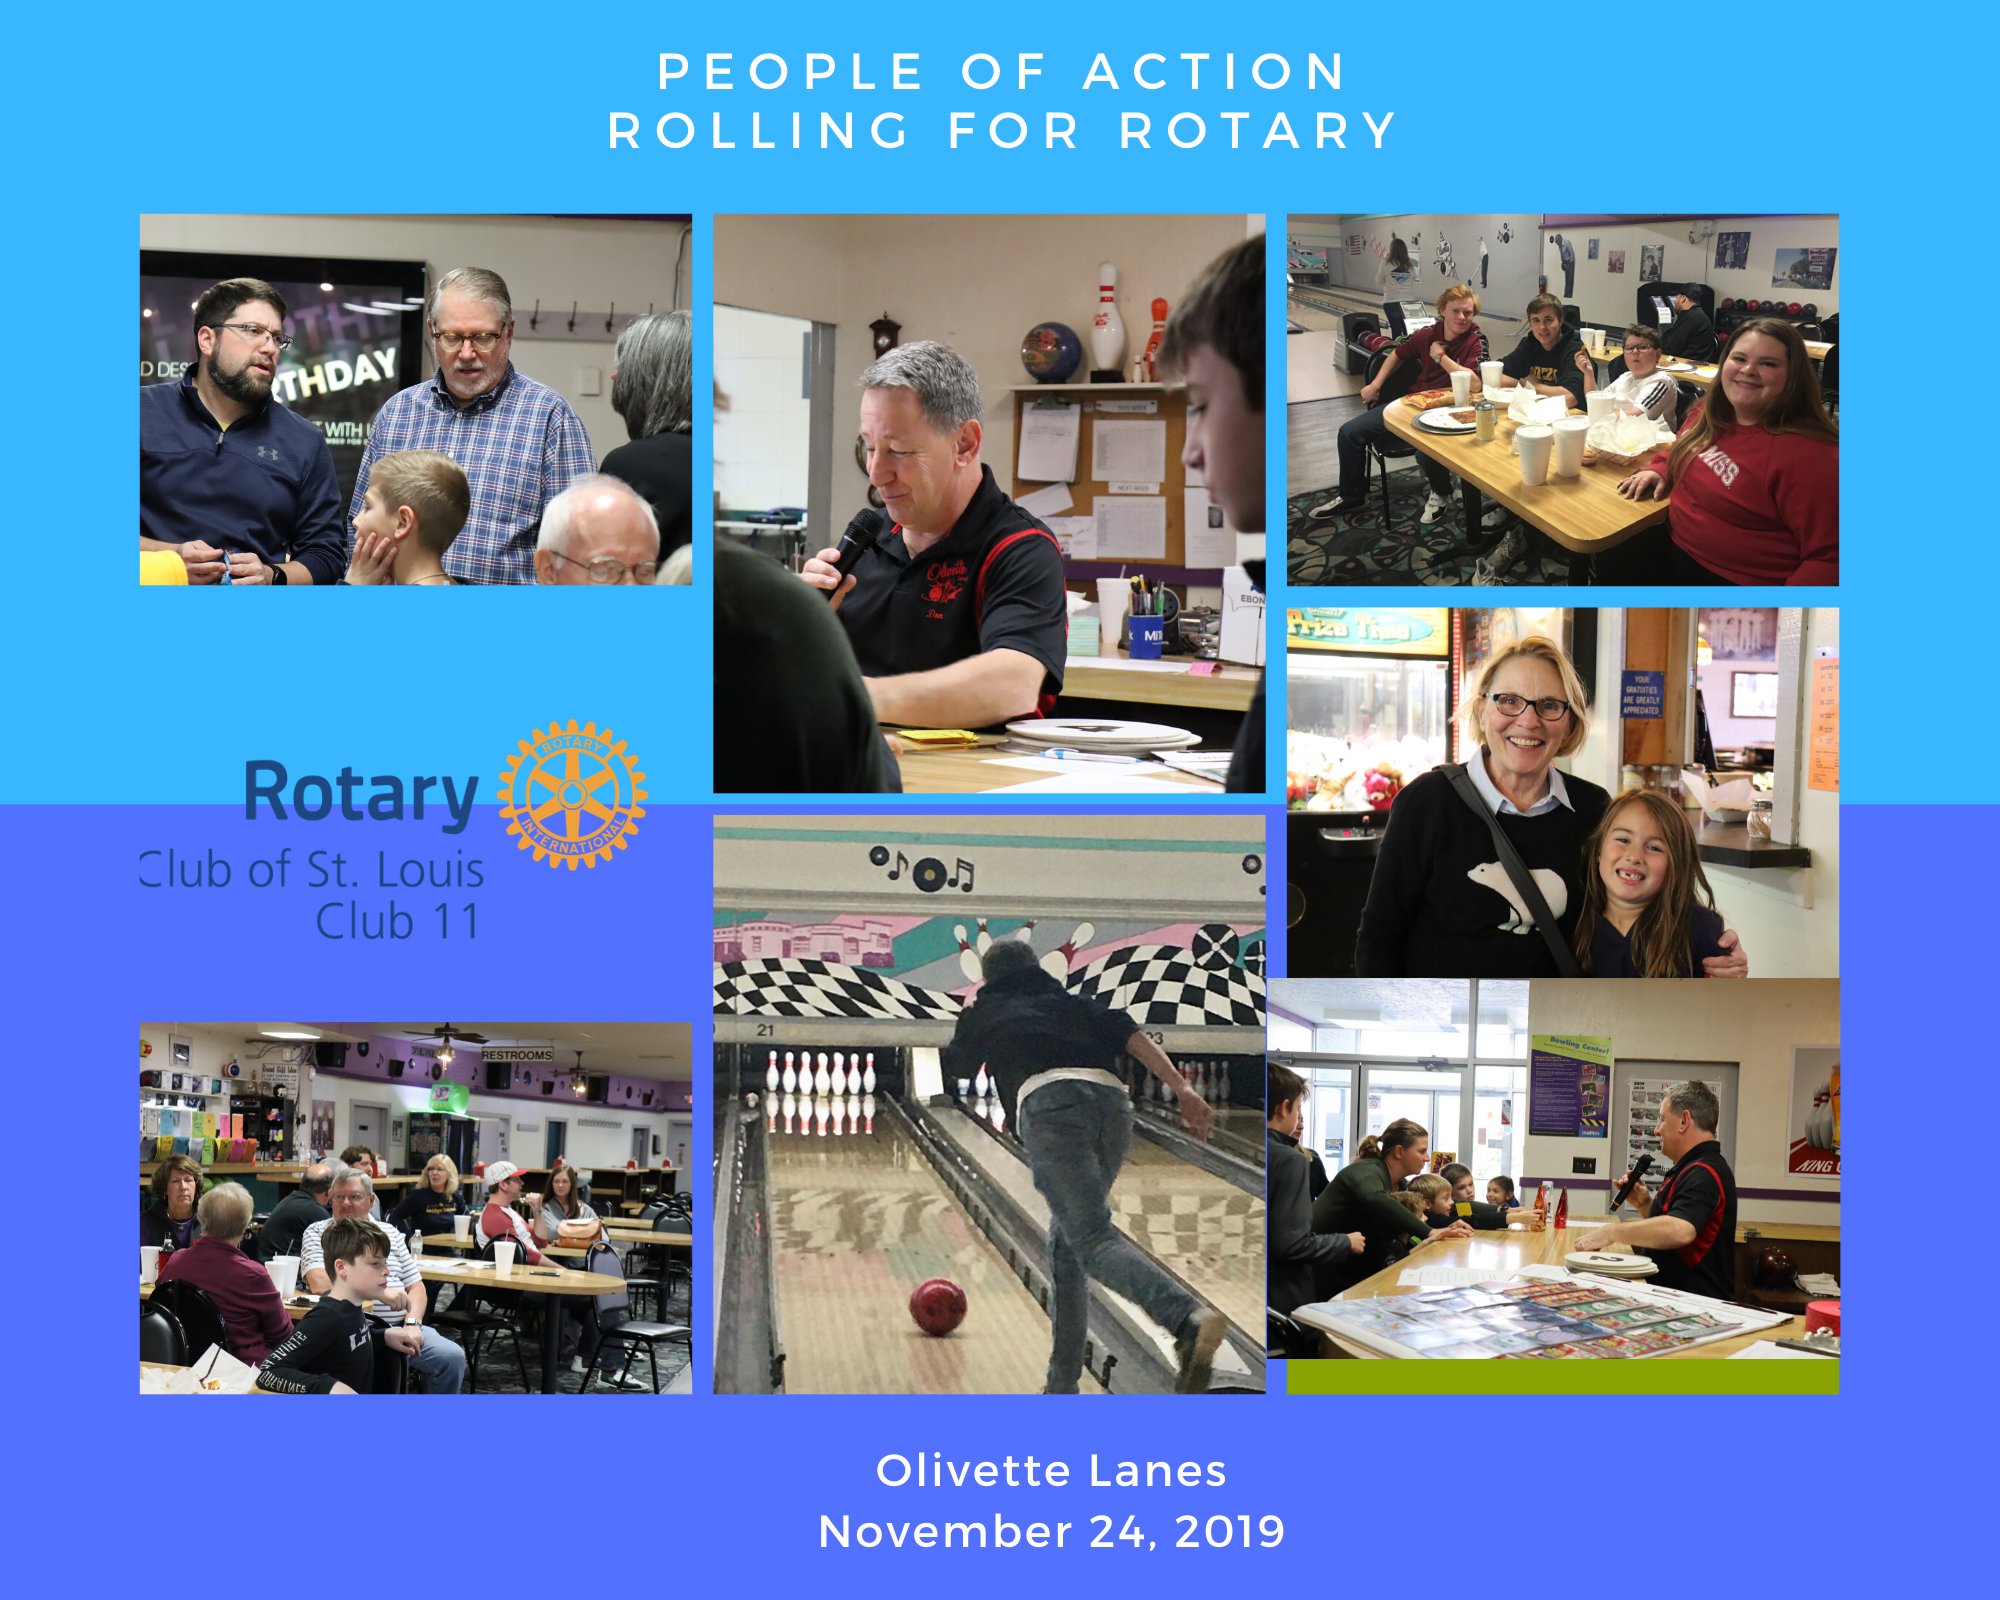 Rolling for Rotary Fundraiser 11-24-19 - A great success